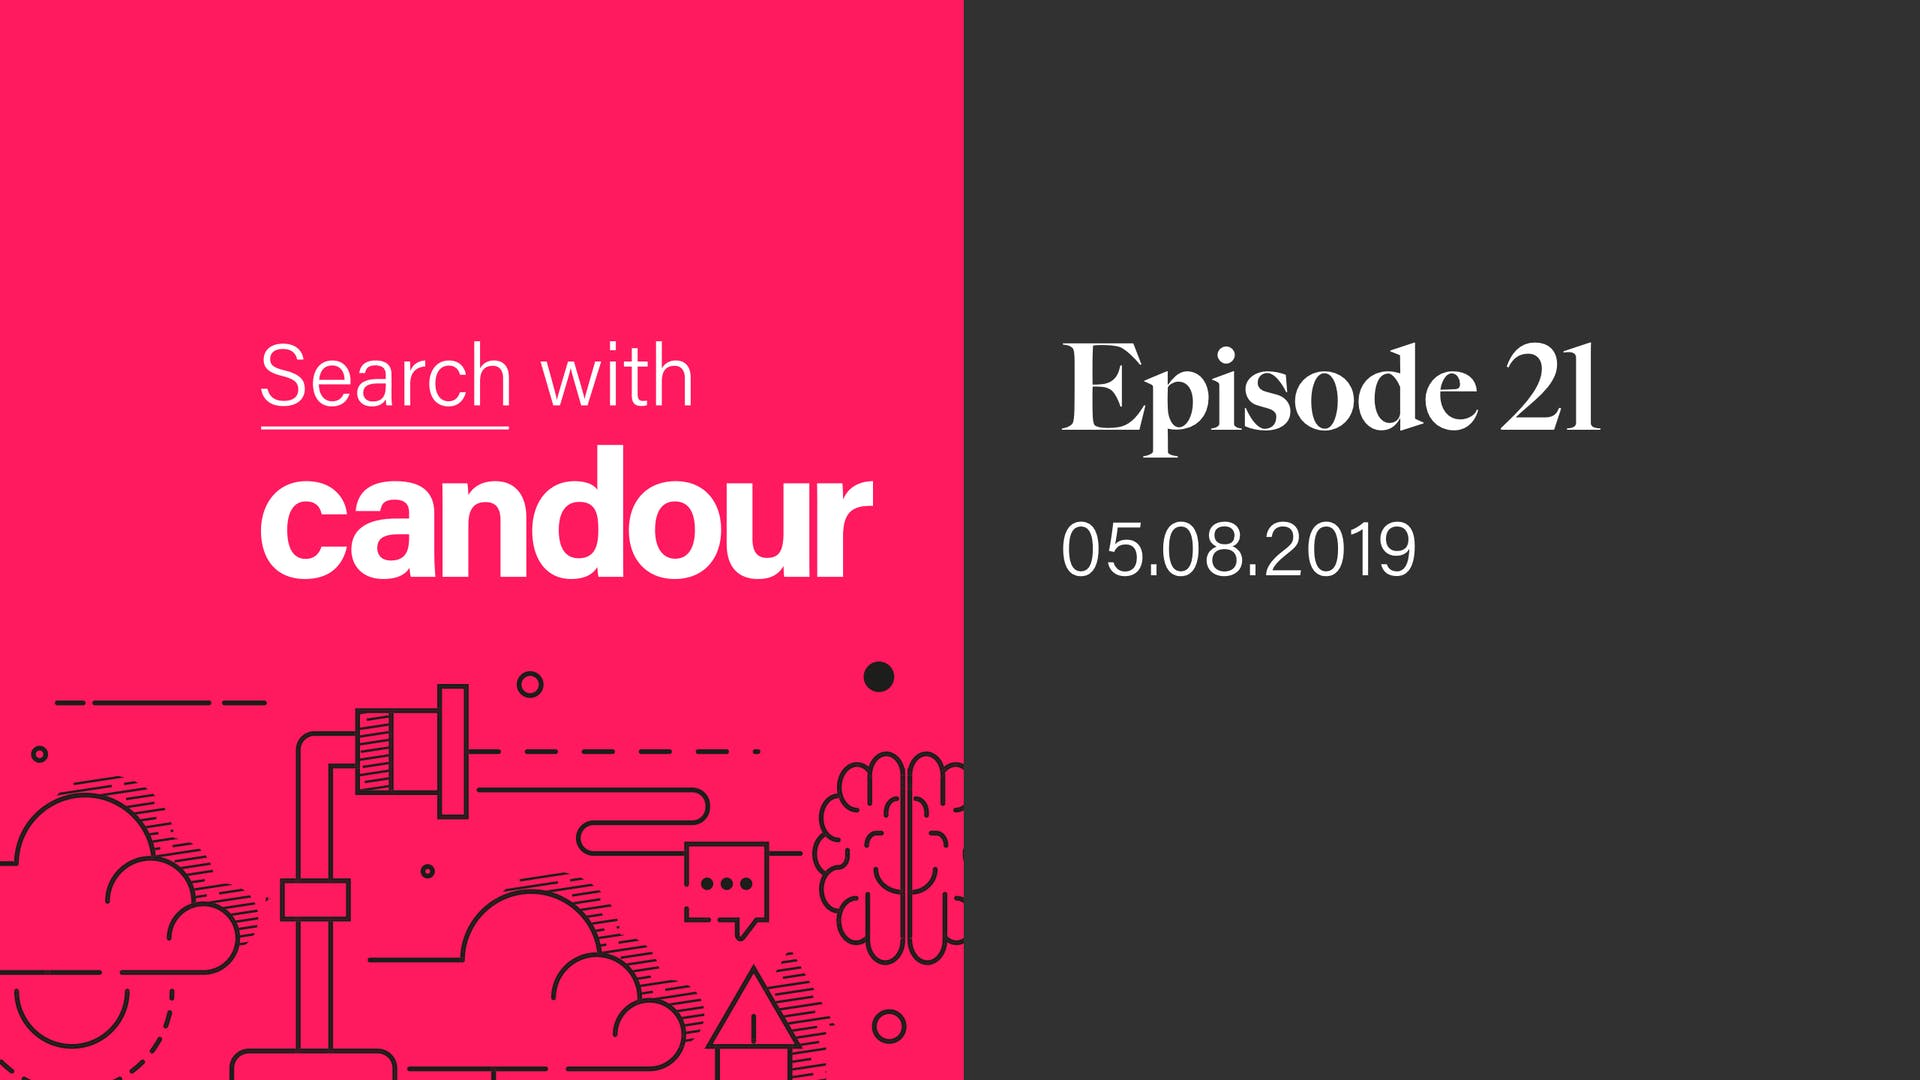 Search with Candour - Episode 21